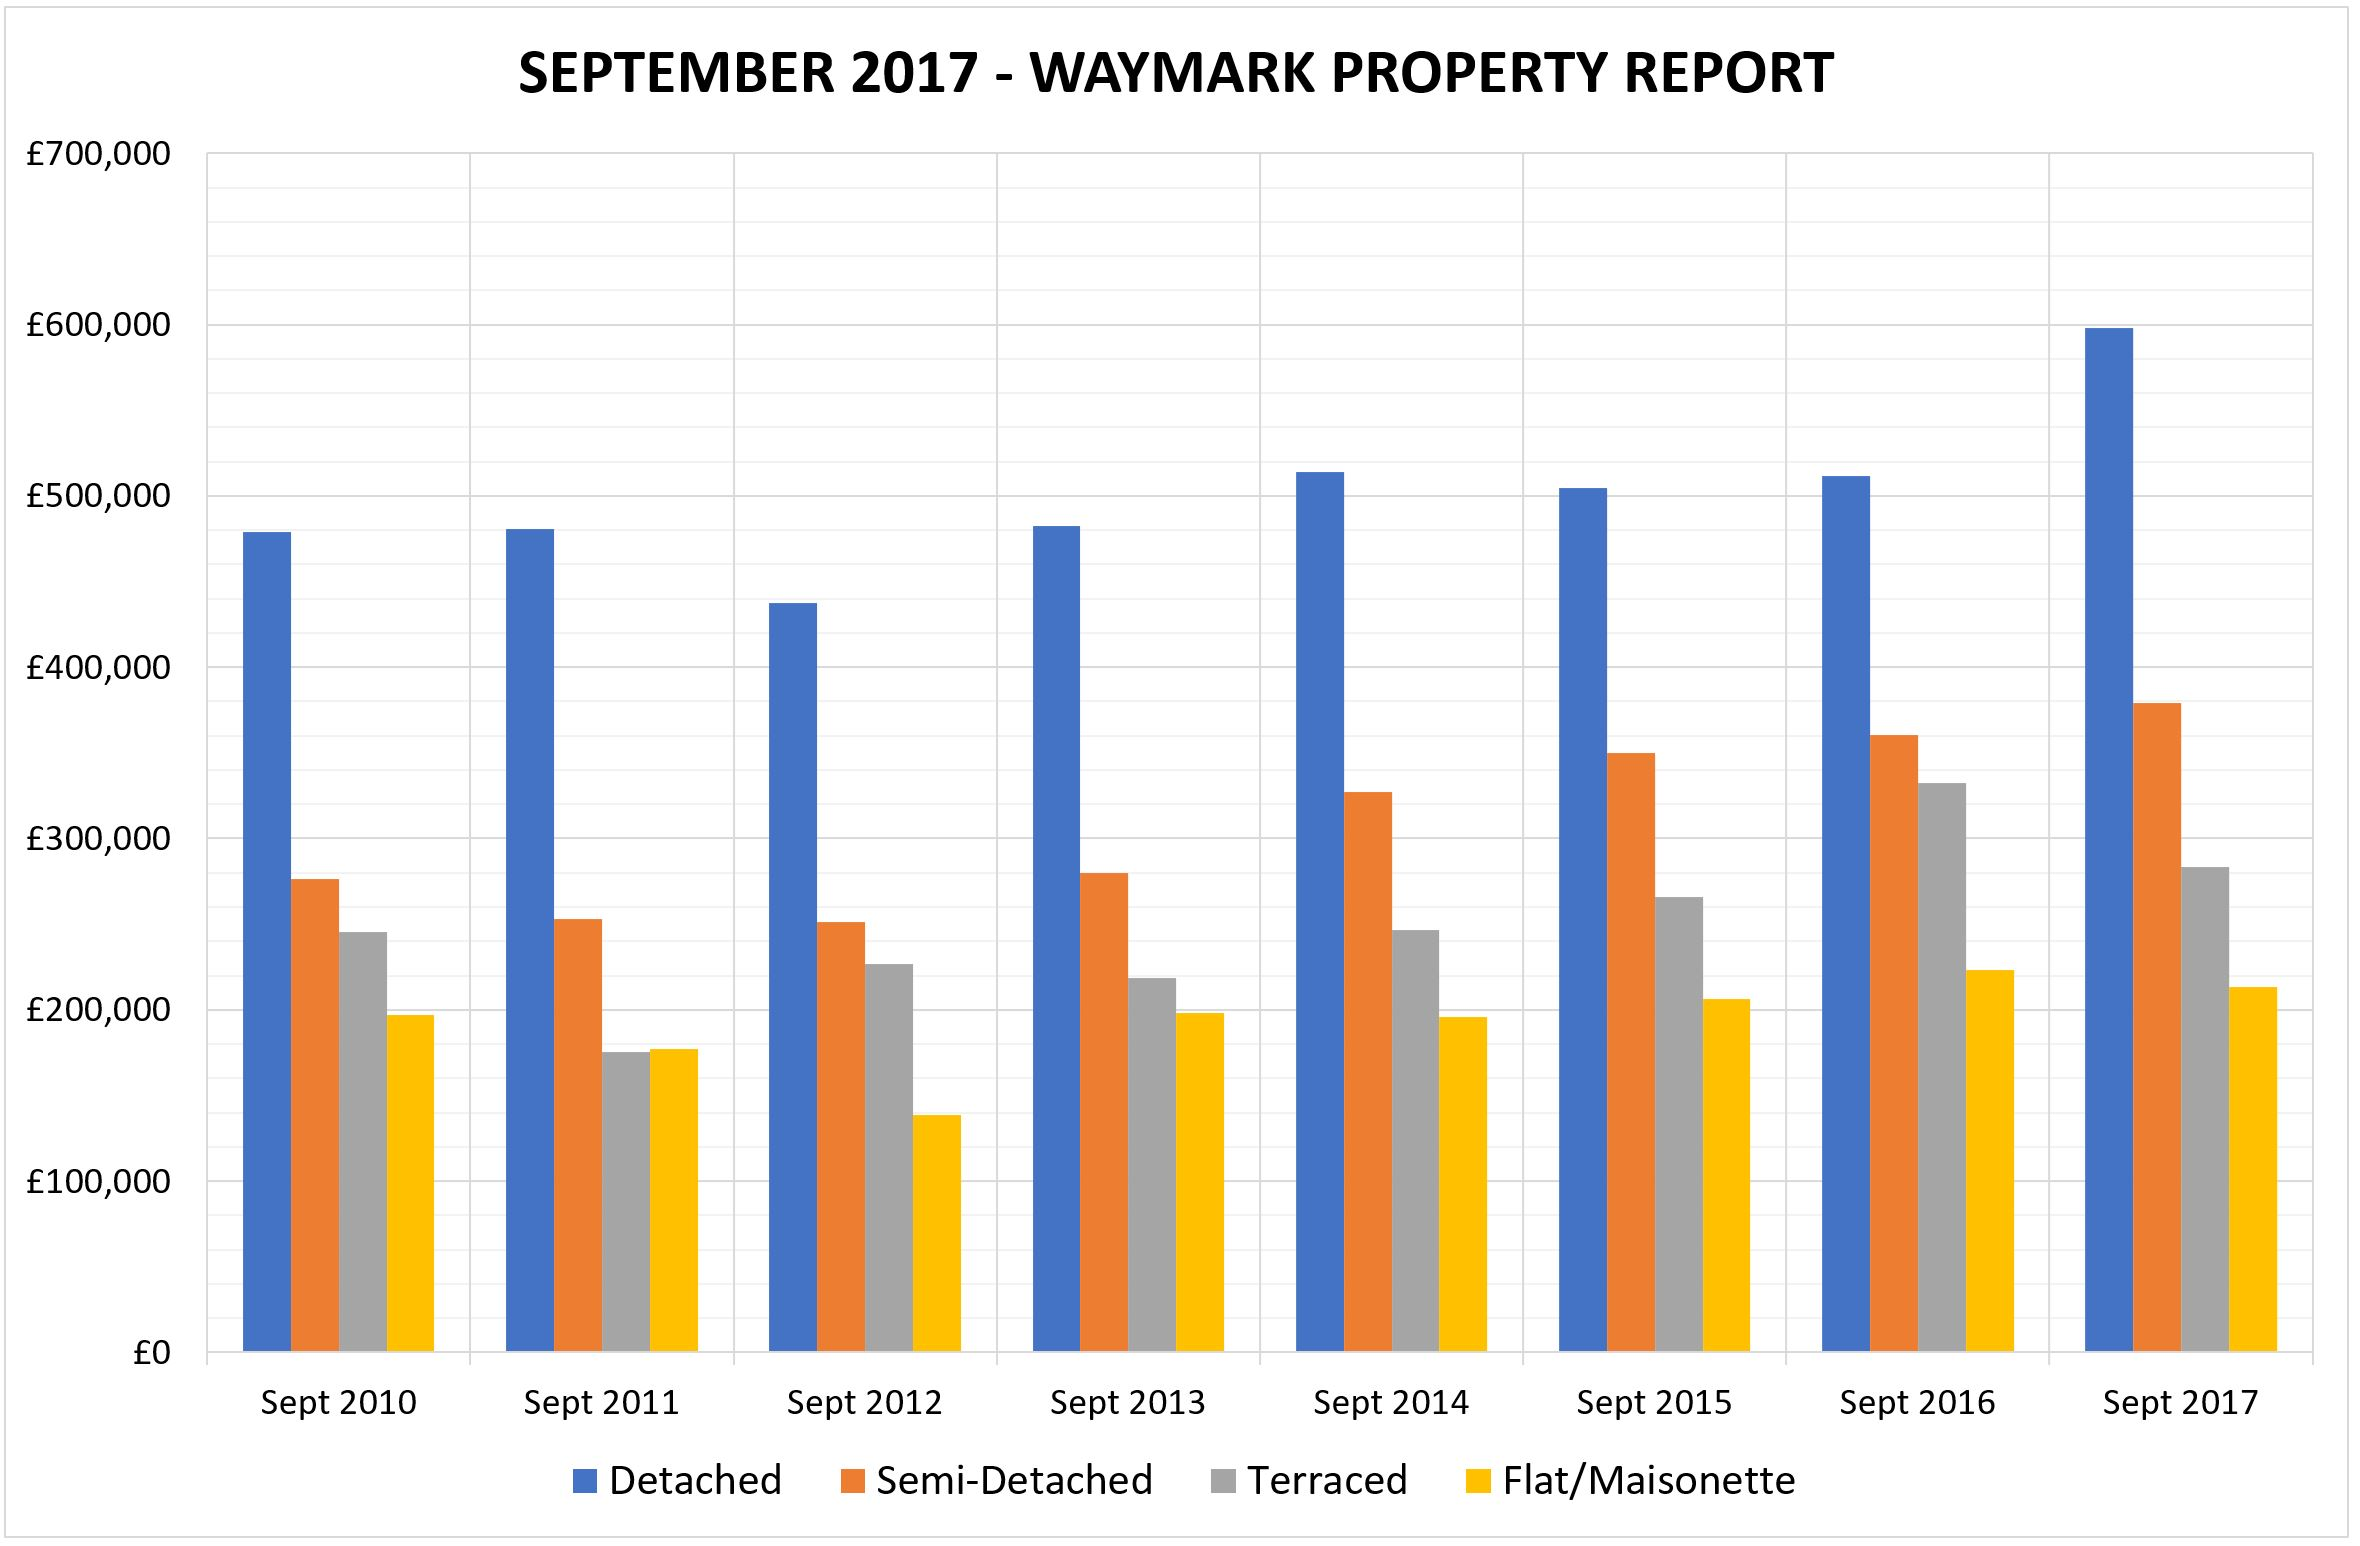 September 2017 - Waymark Property Report